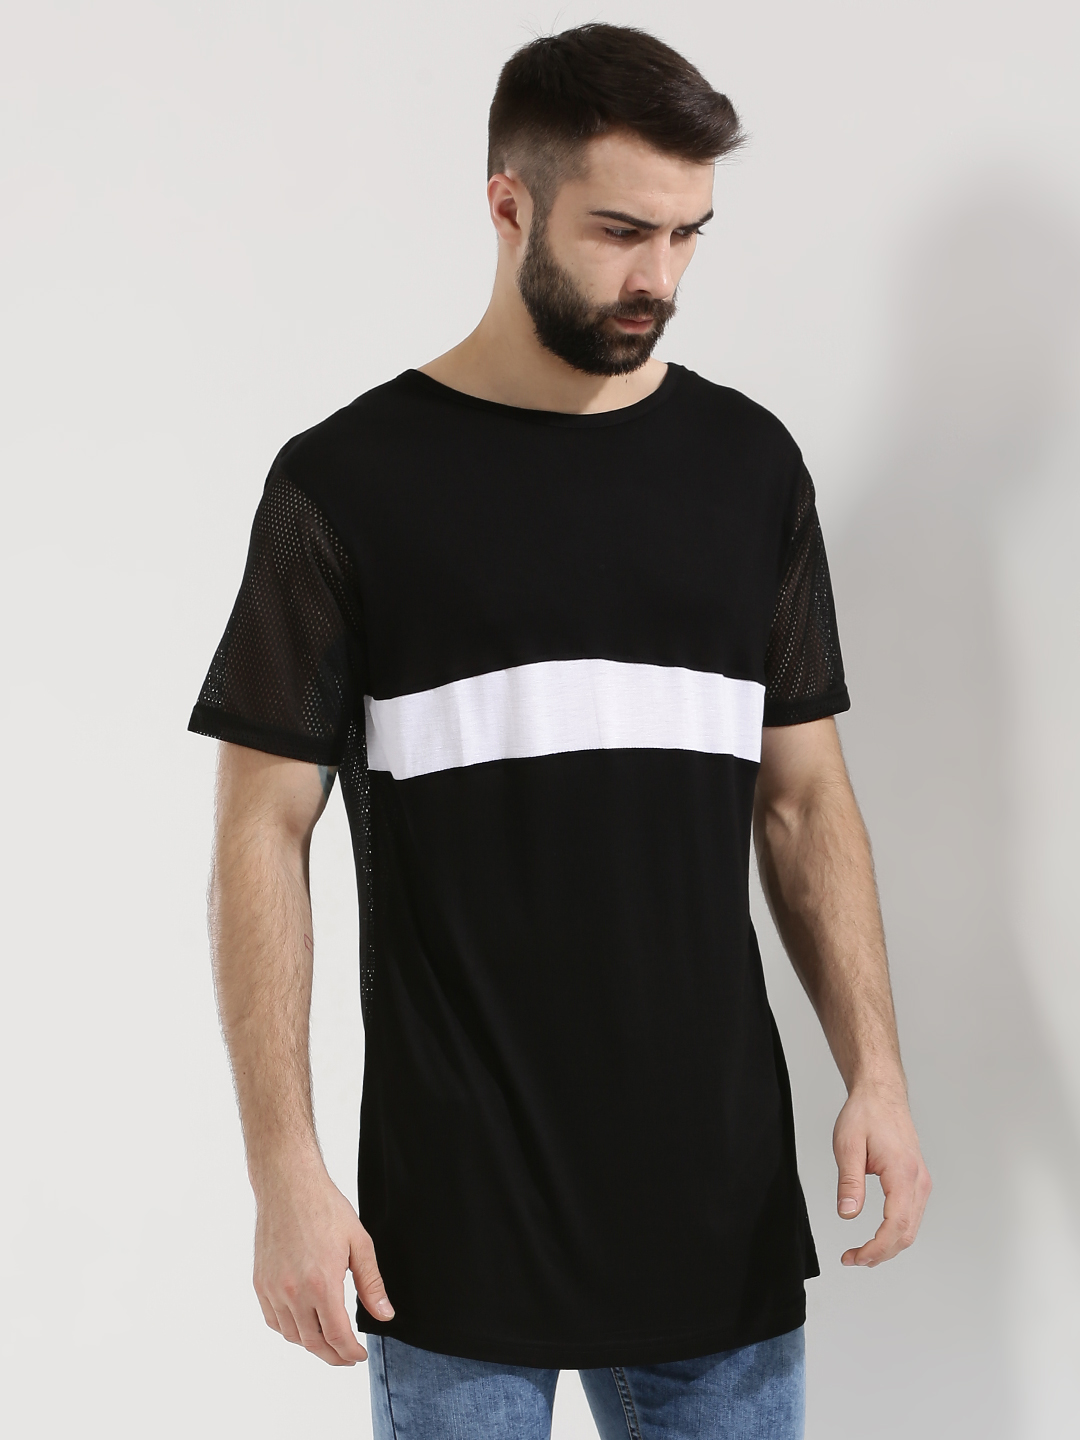 Adamo London Black Contrast Stripe T-Shirt With Mesh Back 1